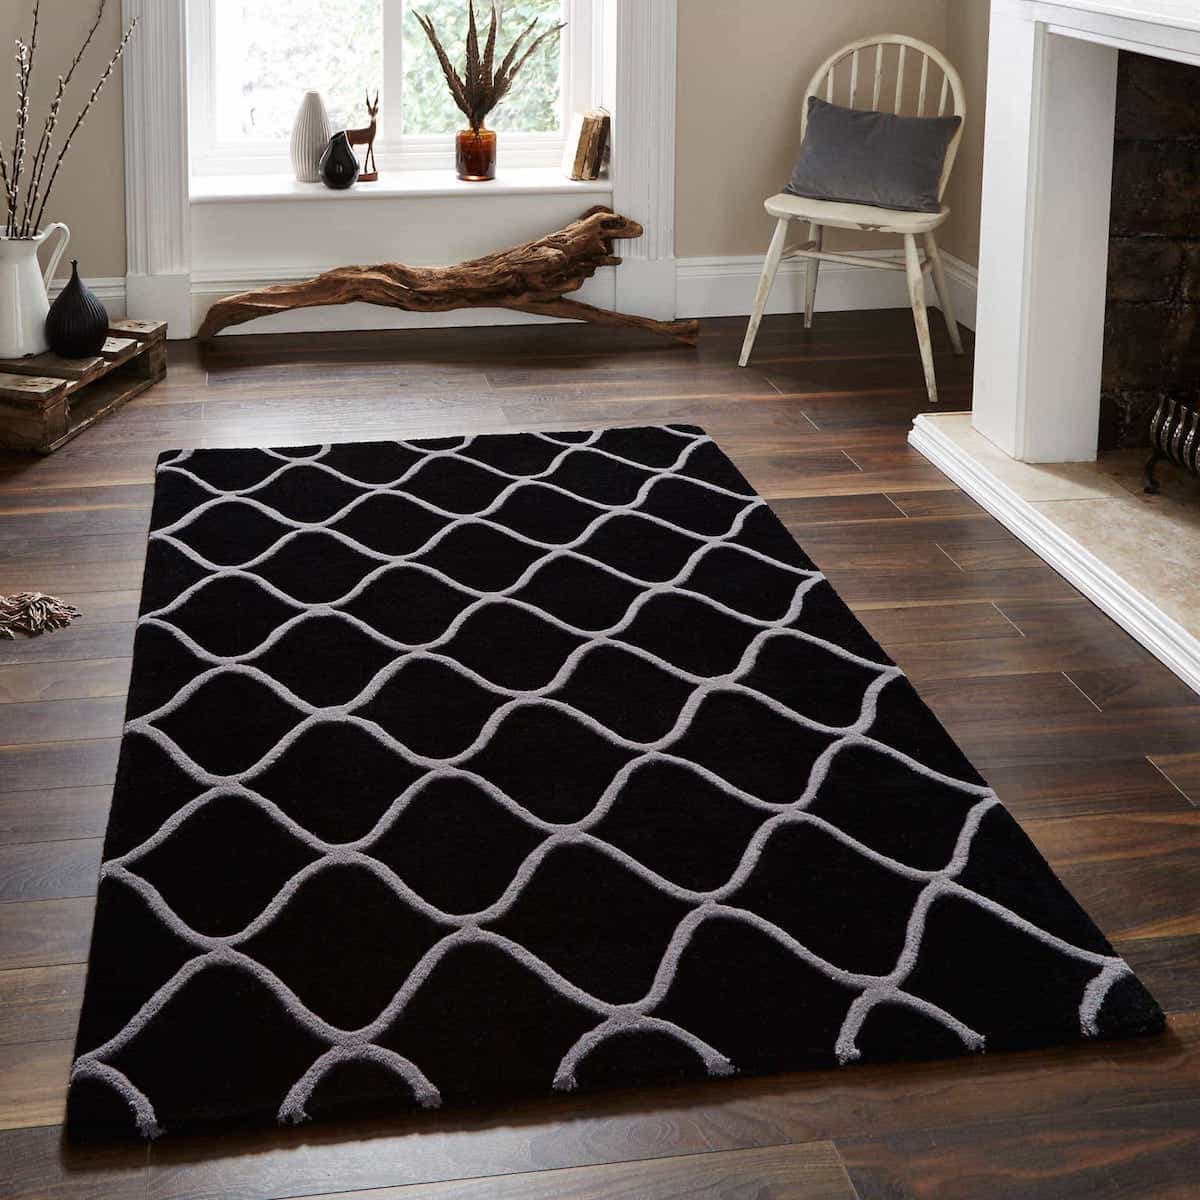 Duo Tone Quatrefoil Handmade Wool Rug With Black Color Rug (Image 7 of 15)